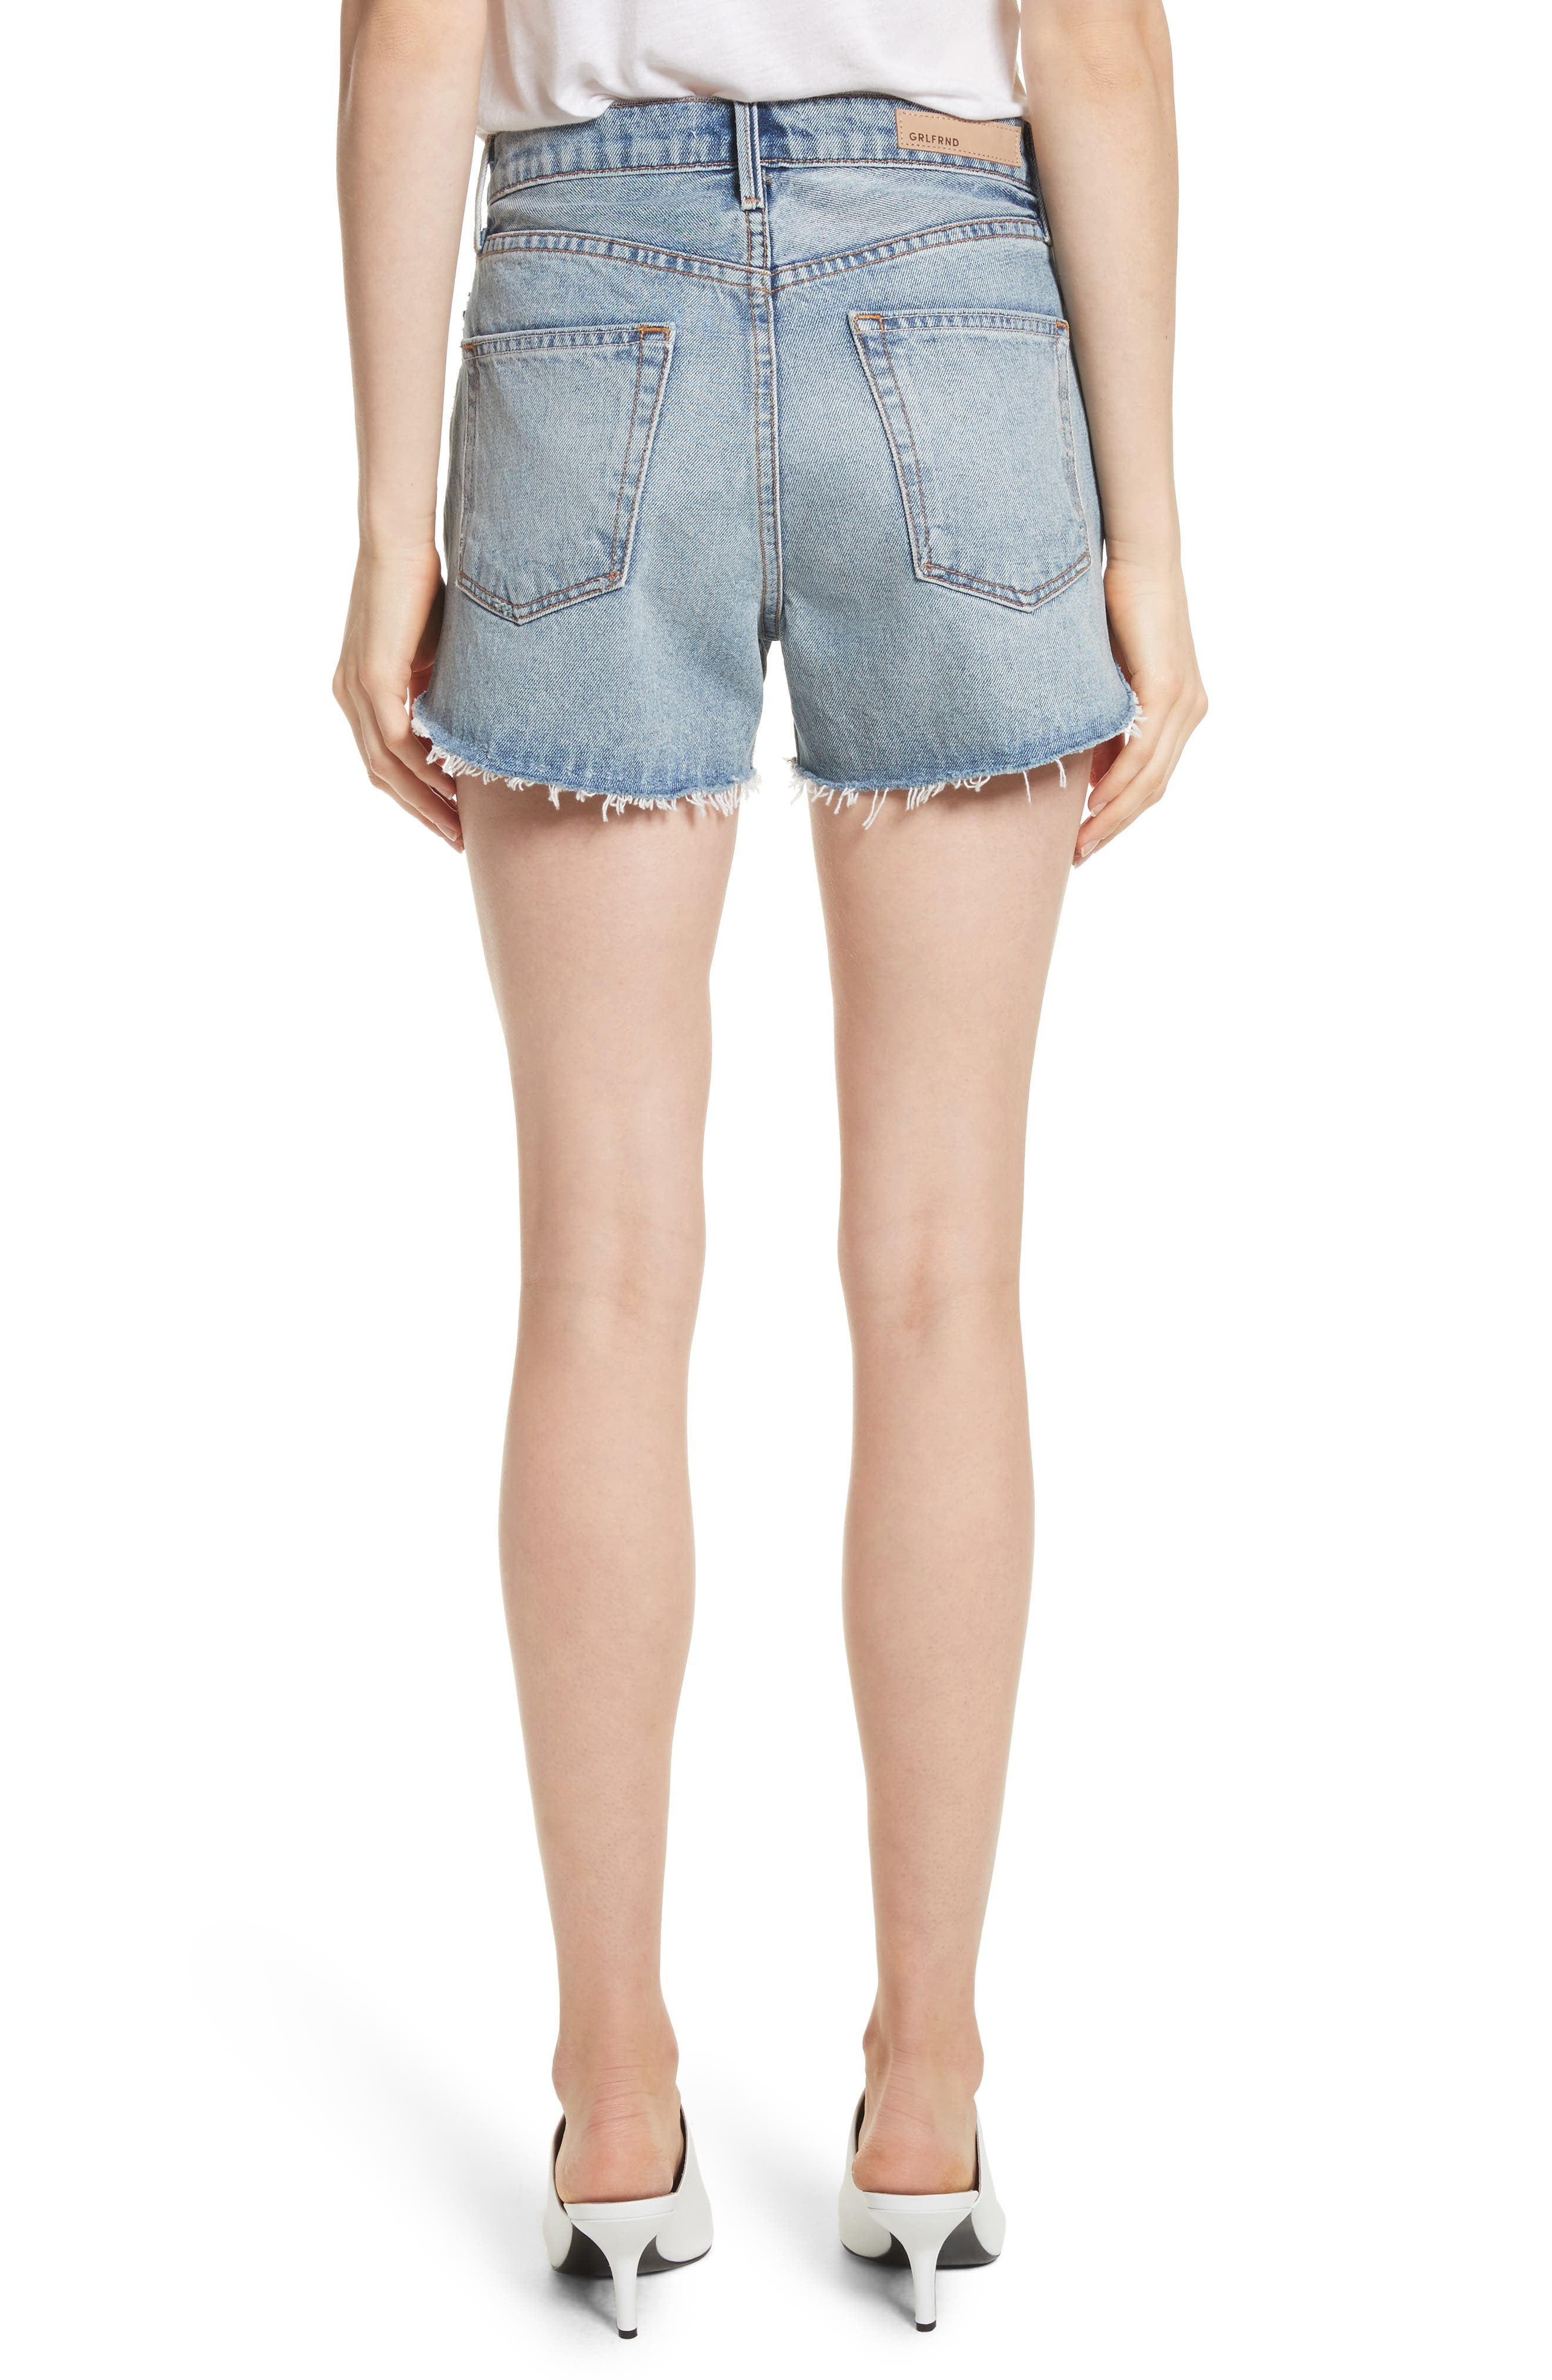 Mardee Denim Shorts,                             Alternate thumbnail 2, color,                             Twisted